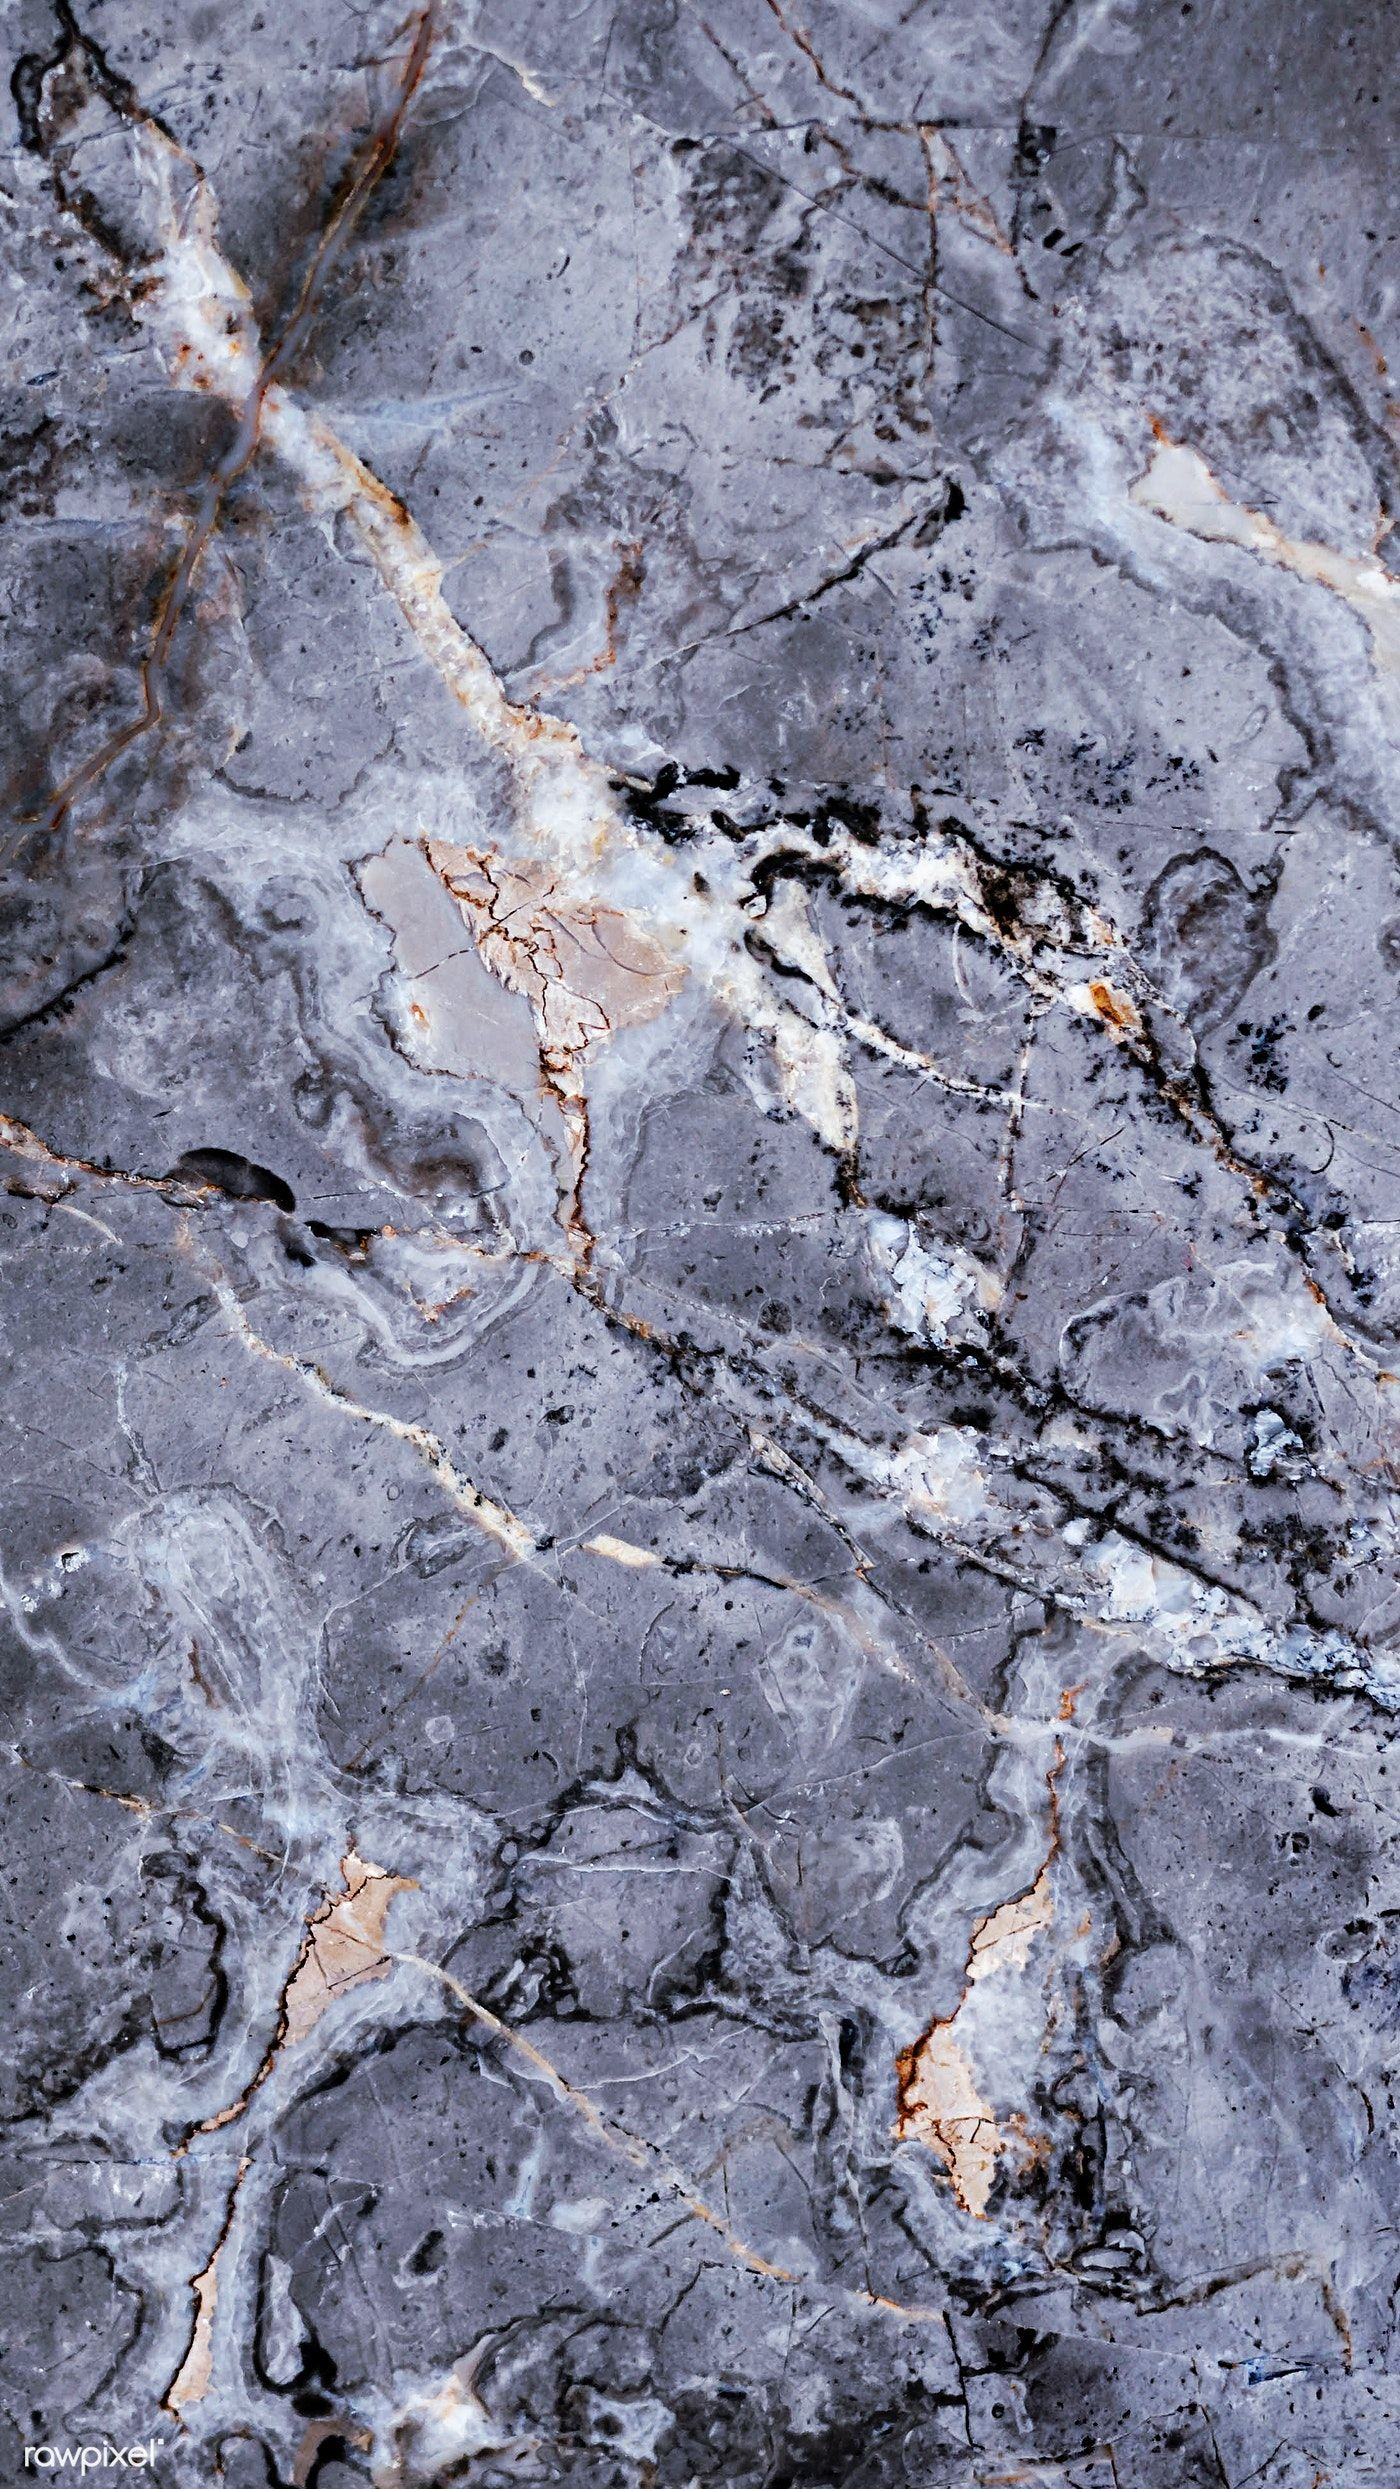 Download premium image of Gray marble texture with streaks mobile